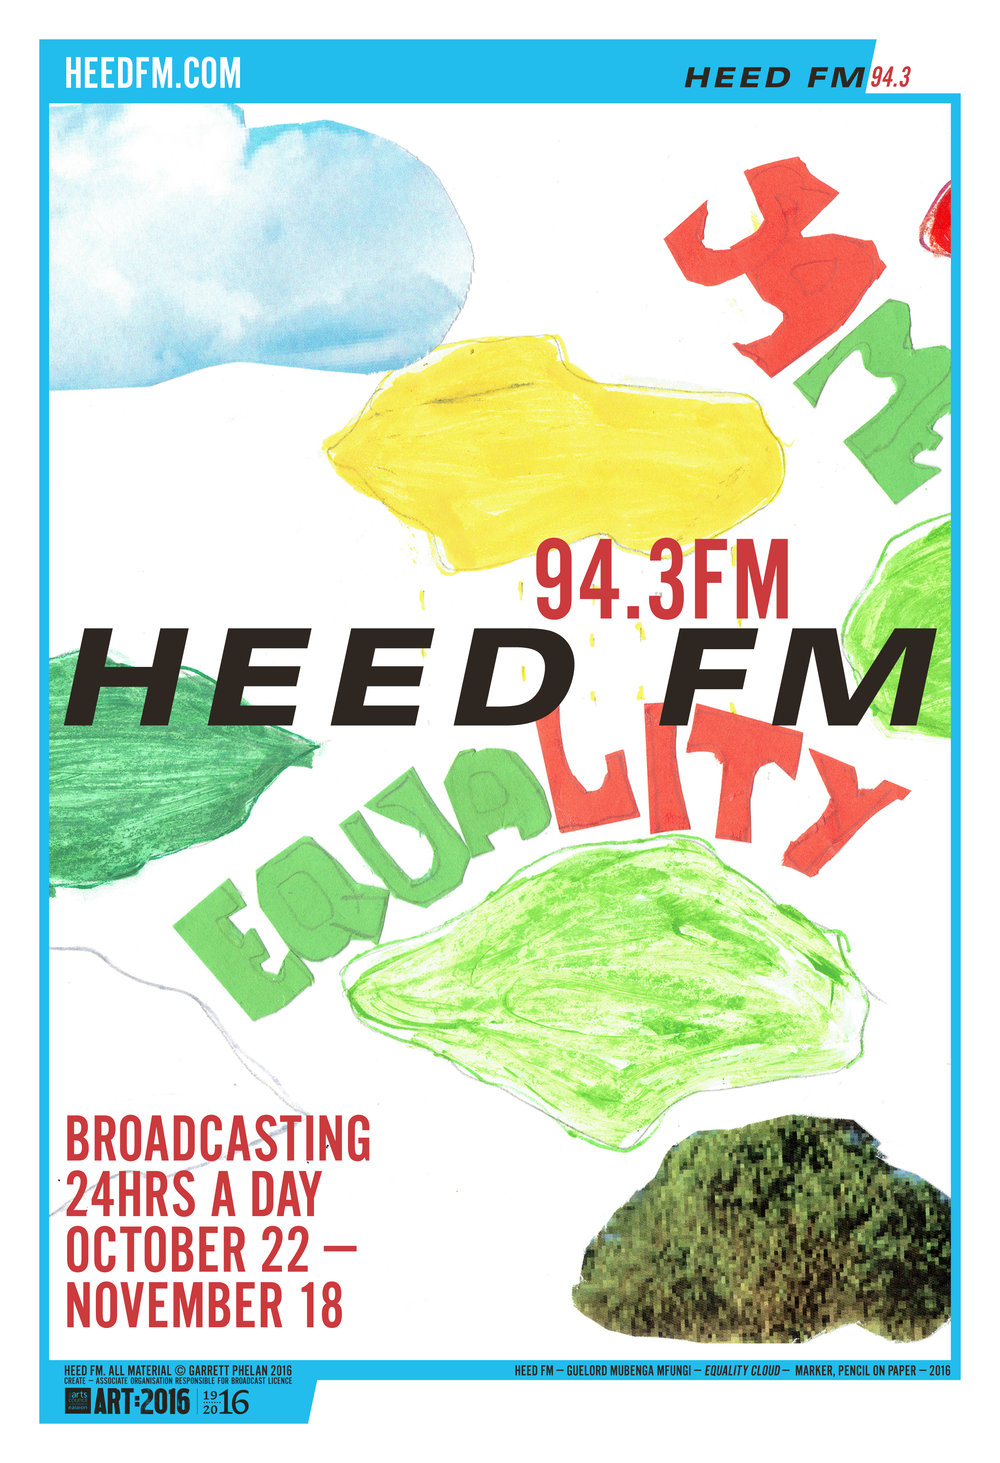 heed fm 4 sheets artwork-15.jpg